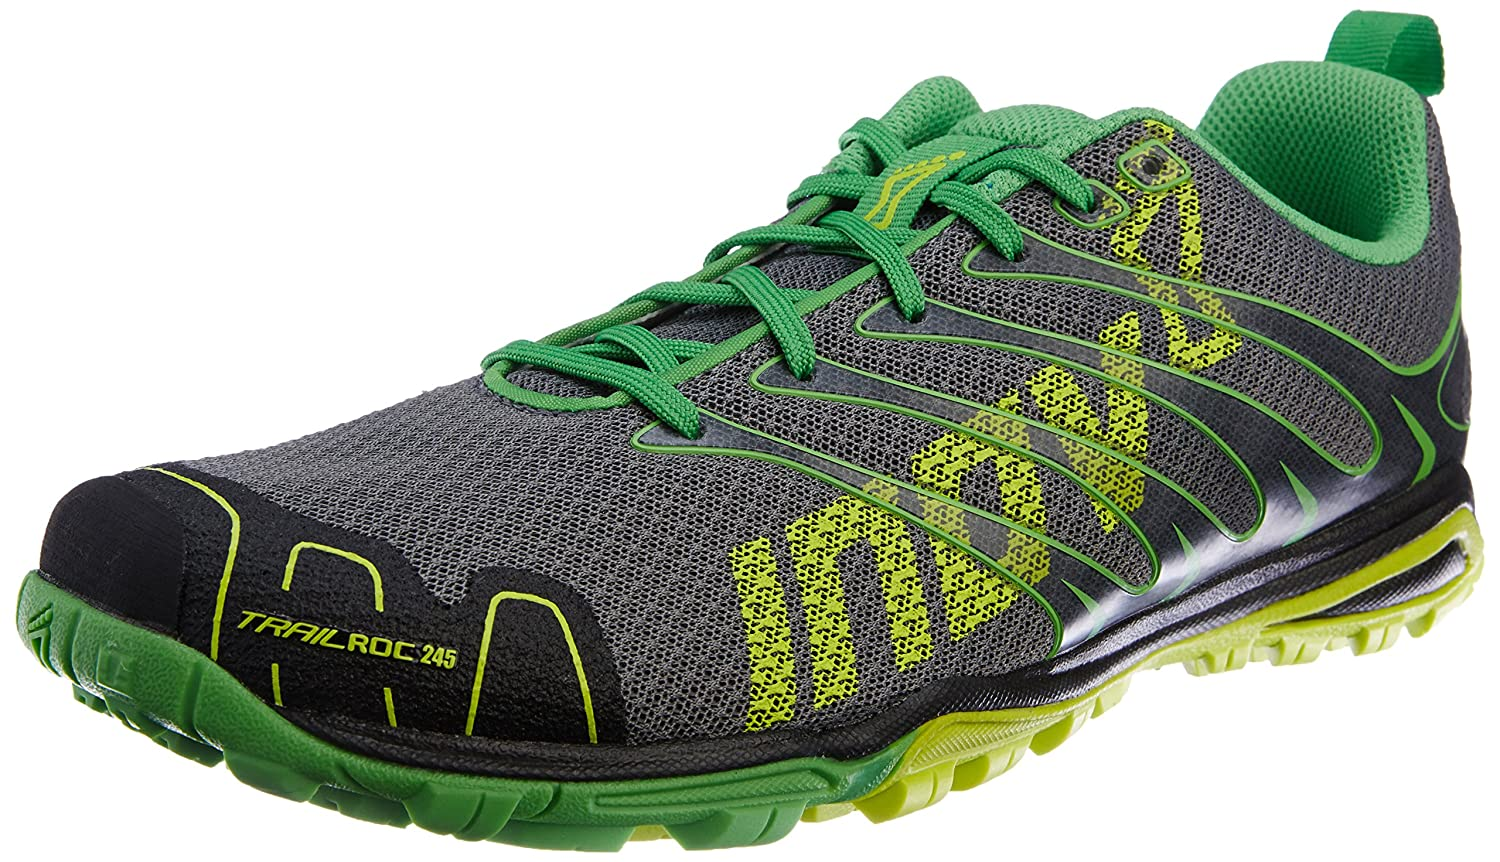 Inov-8 Trailroc 245 Women's Trail Running Shoe (Standard Fit) - Ss15 CT_3472